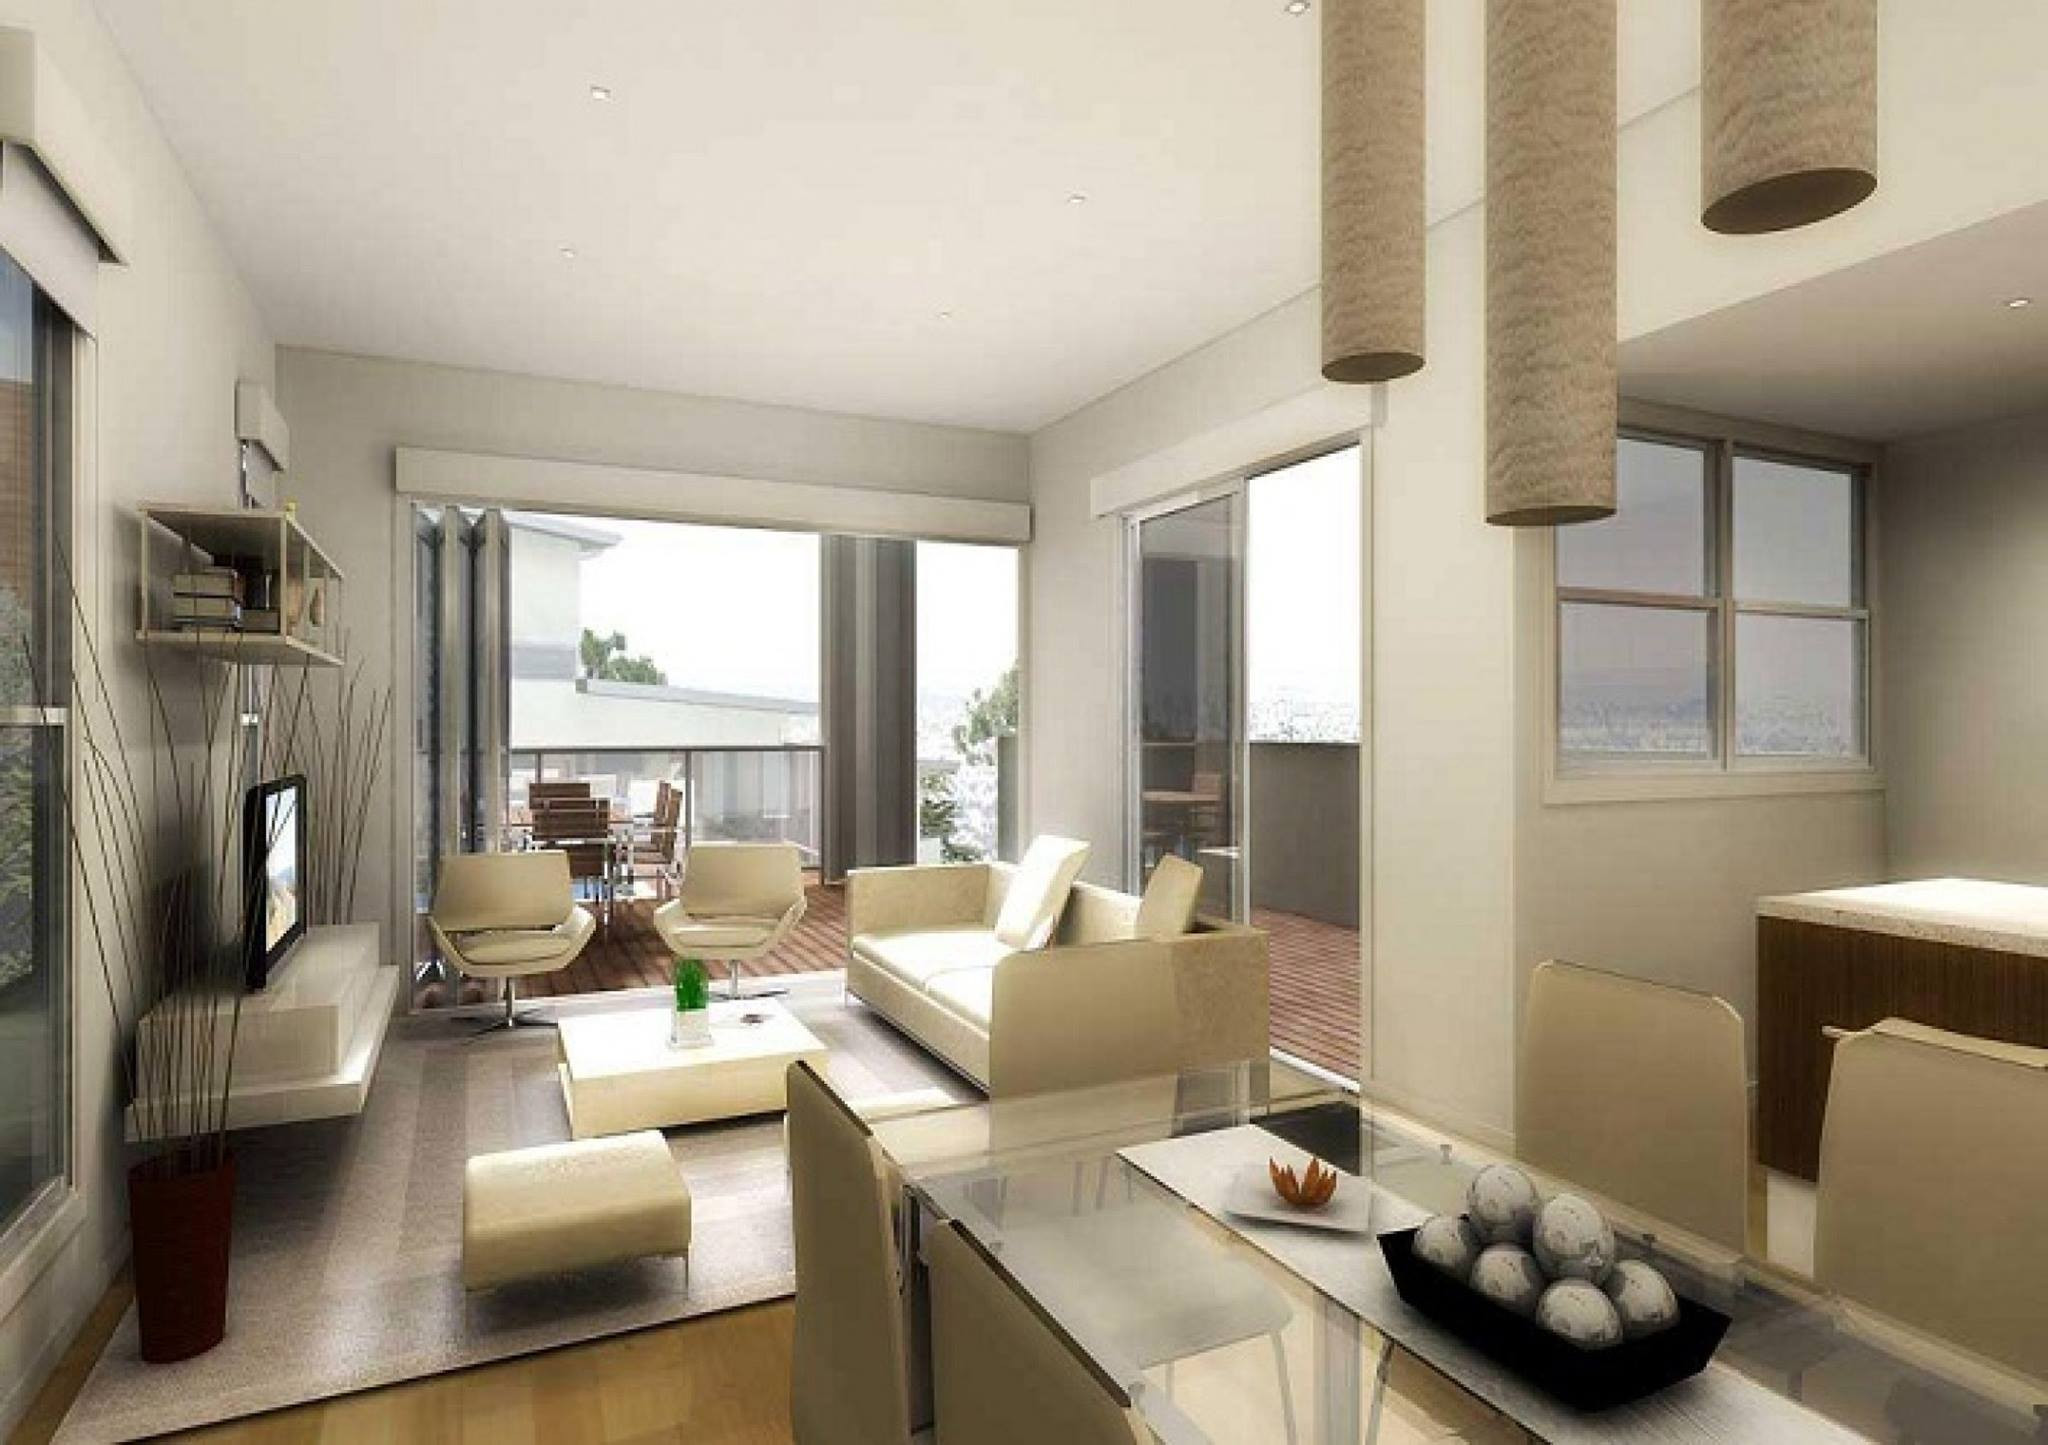 Modern Apartment Living Room  89 Amazing Ideas to Furnish Small Apartments to Turn Them